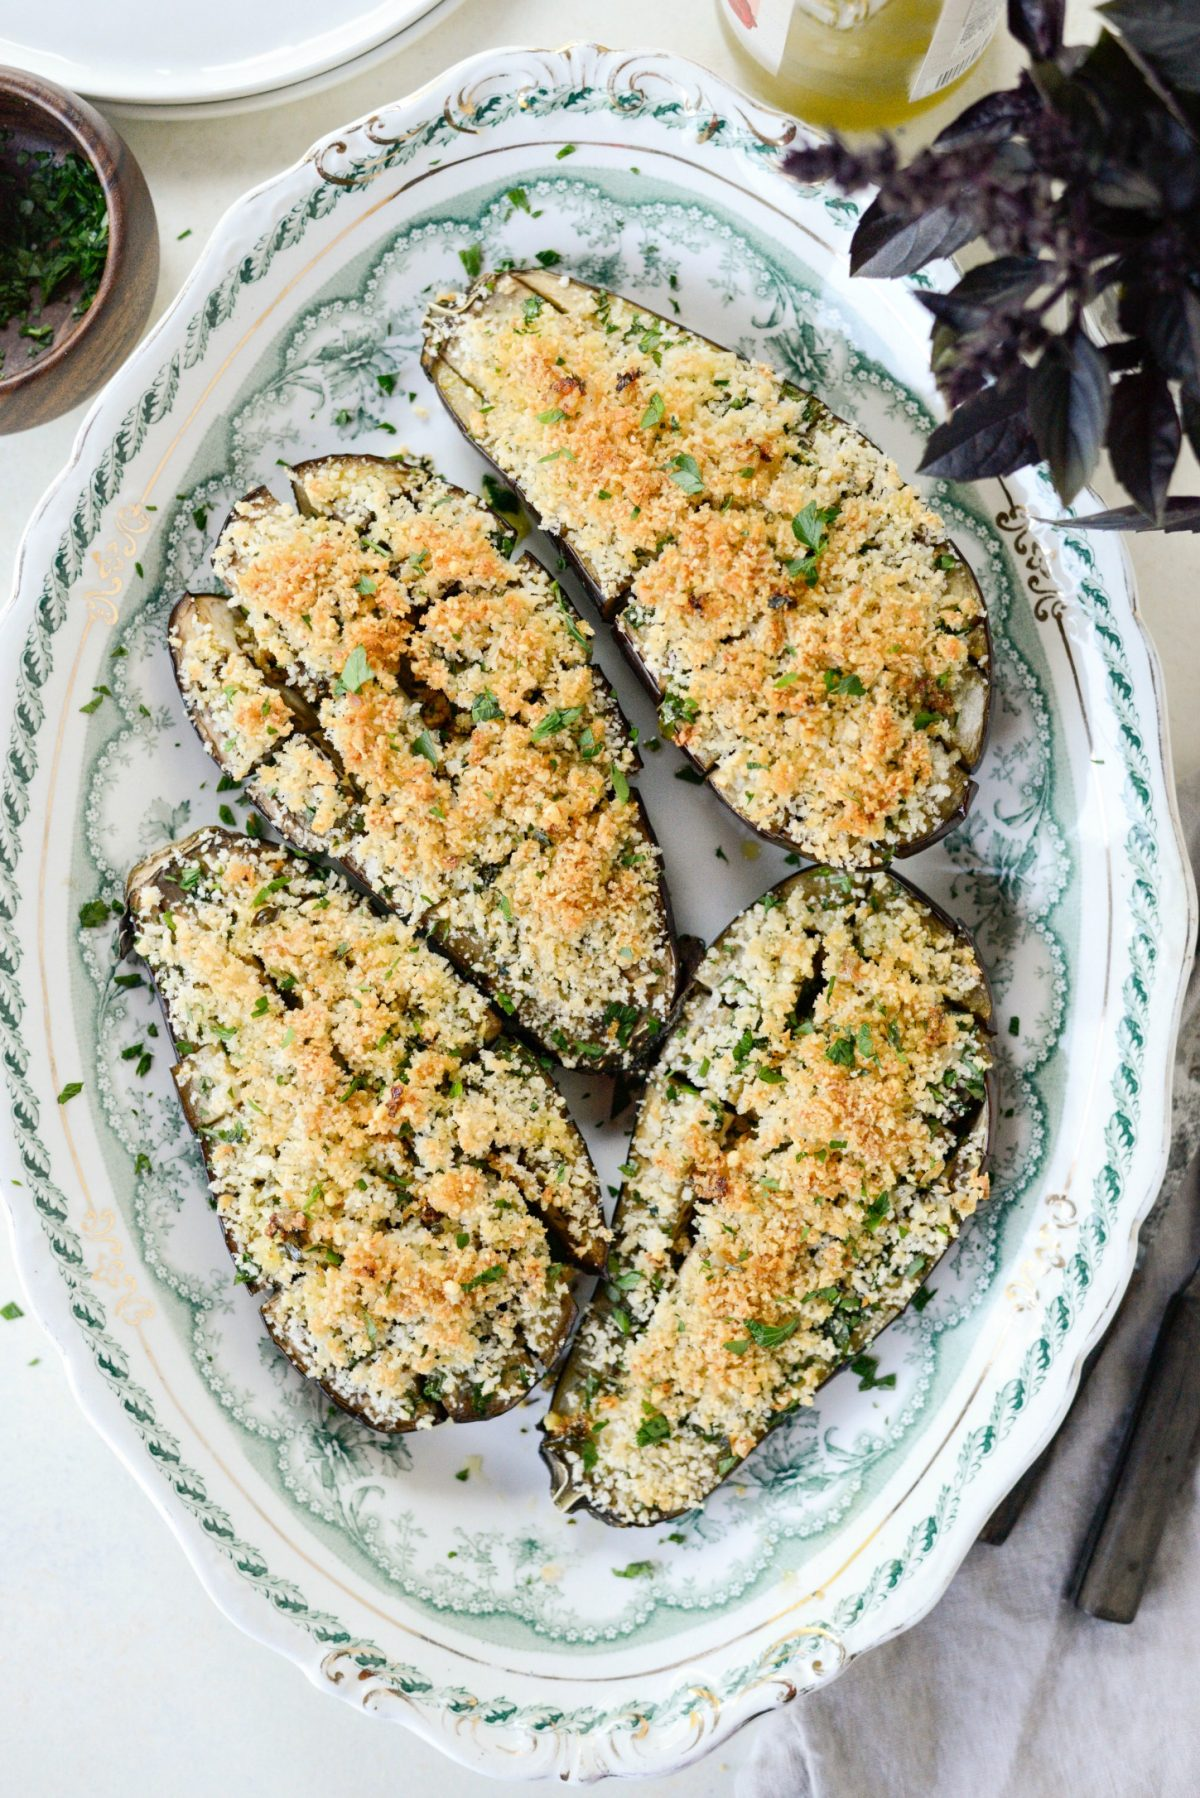 Baked Eggplant with Pecorino Crumbs l SimplyScratch.com (13)